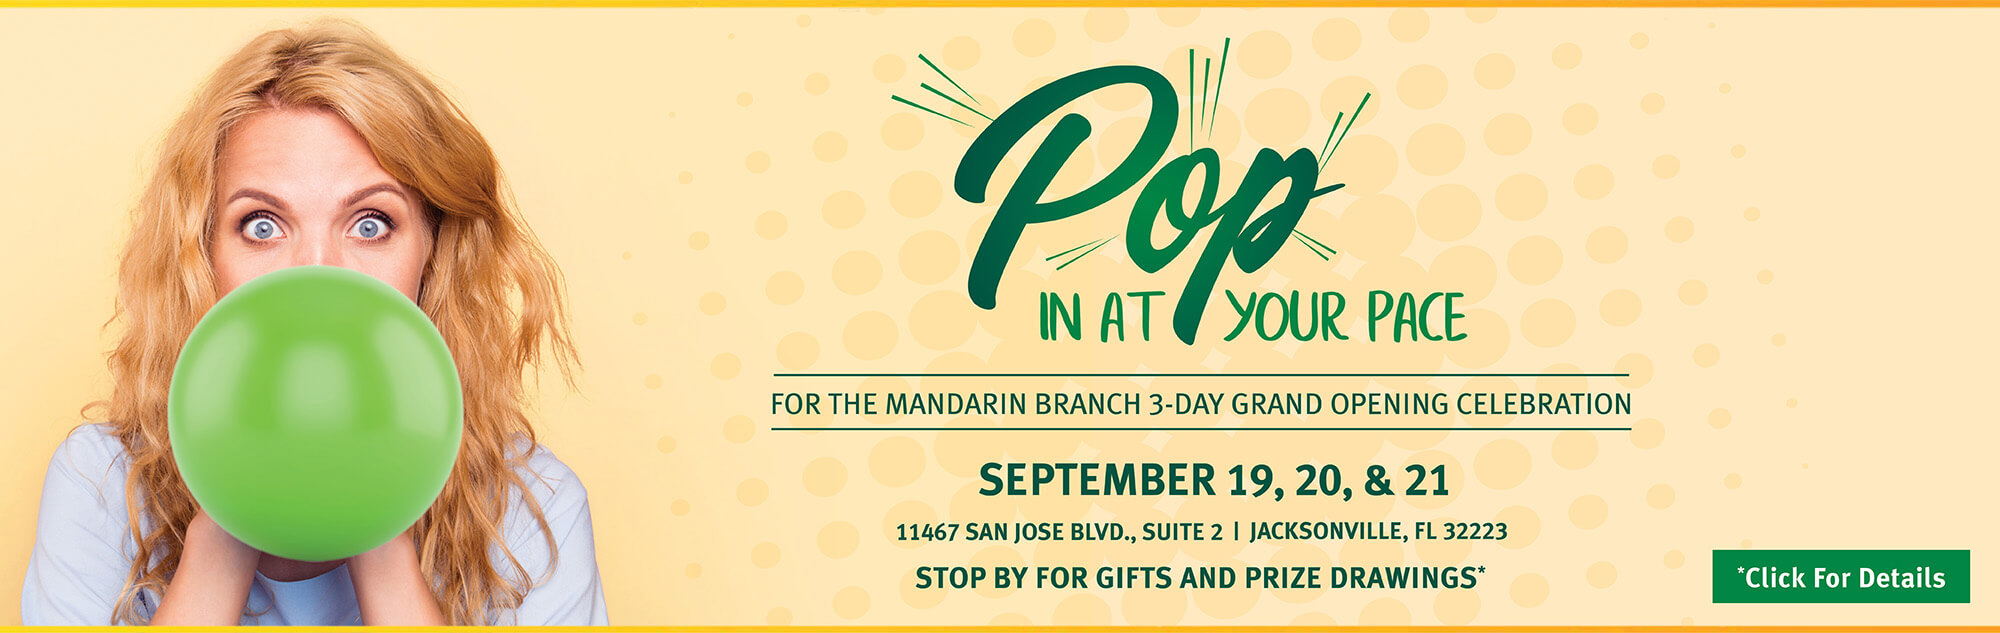 Celebrate our new Mandarin Branch on 9/19-9/21